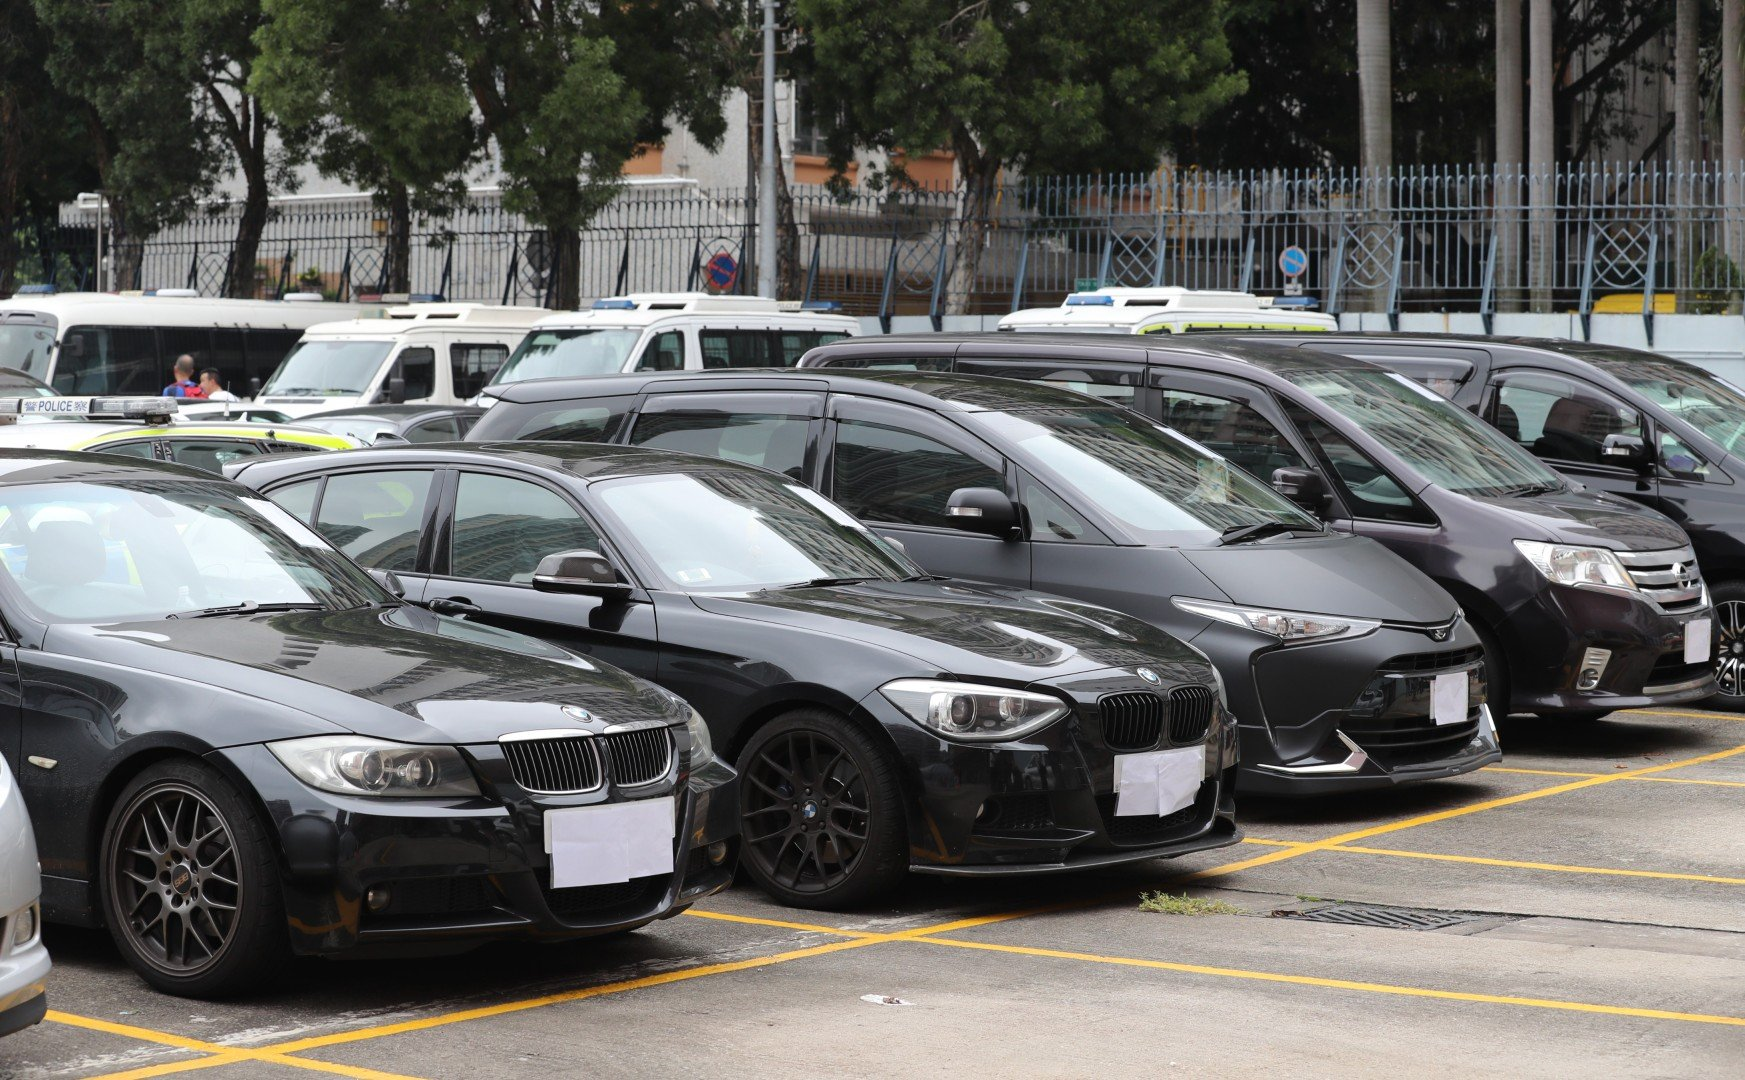 22 Uber drivers arrested in undercover Hong Kong police operation